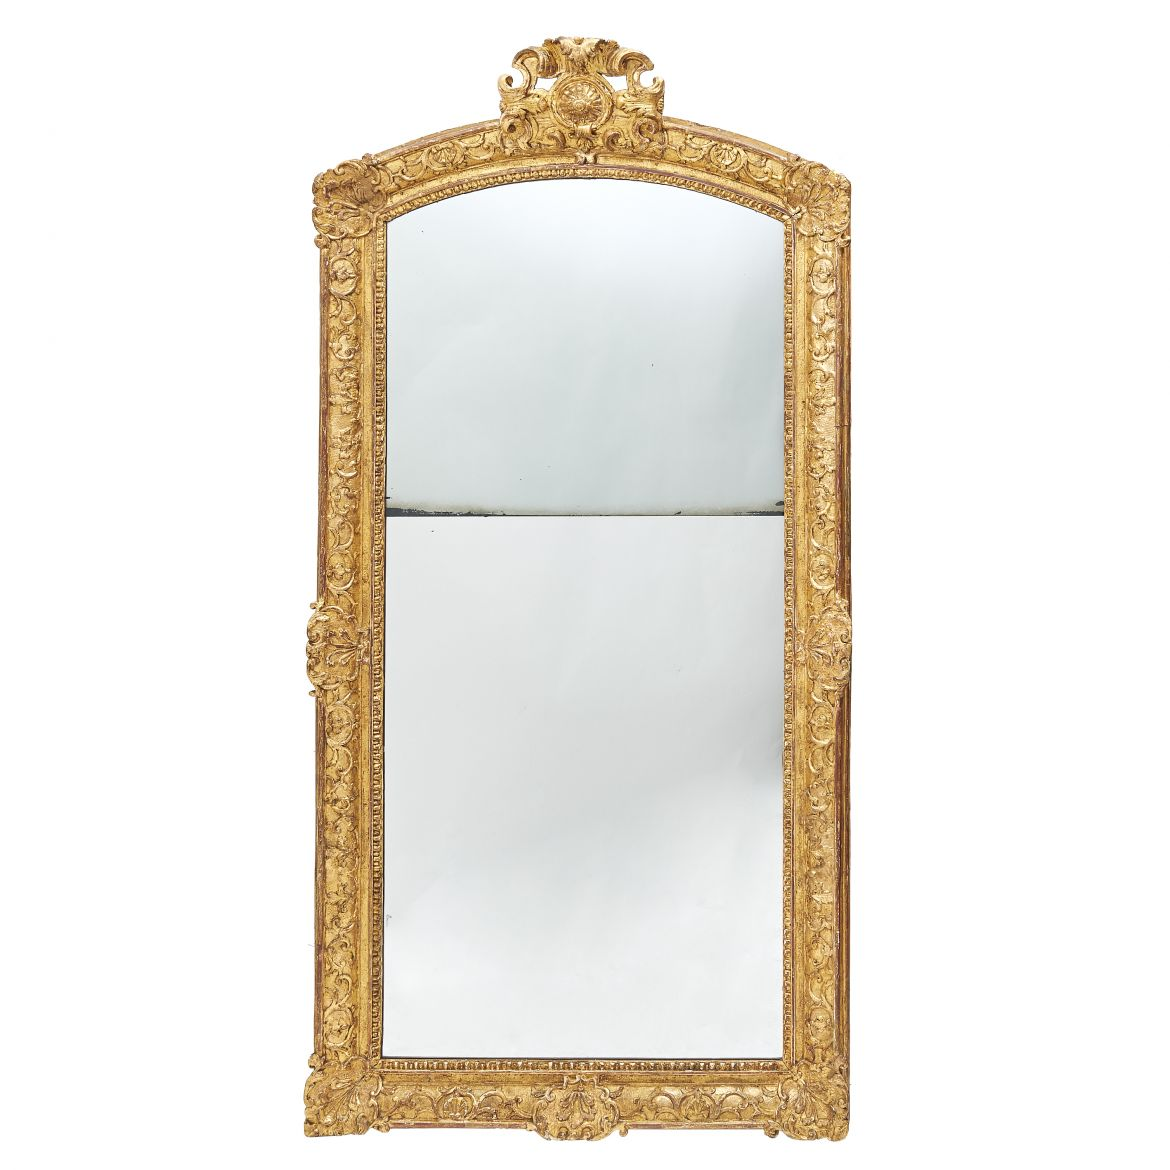 French Regence Rectangular Mirror